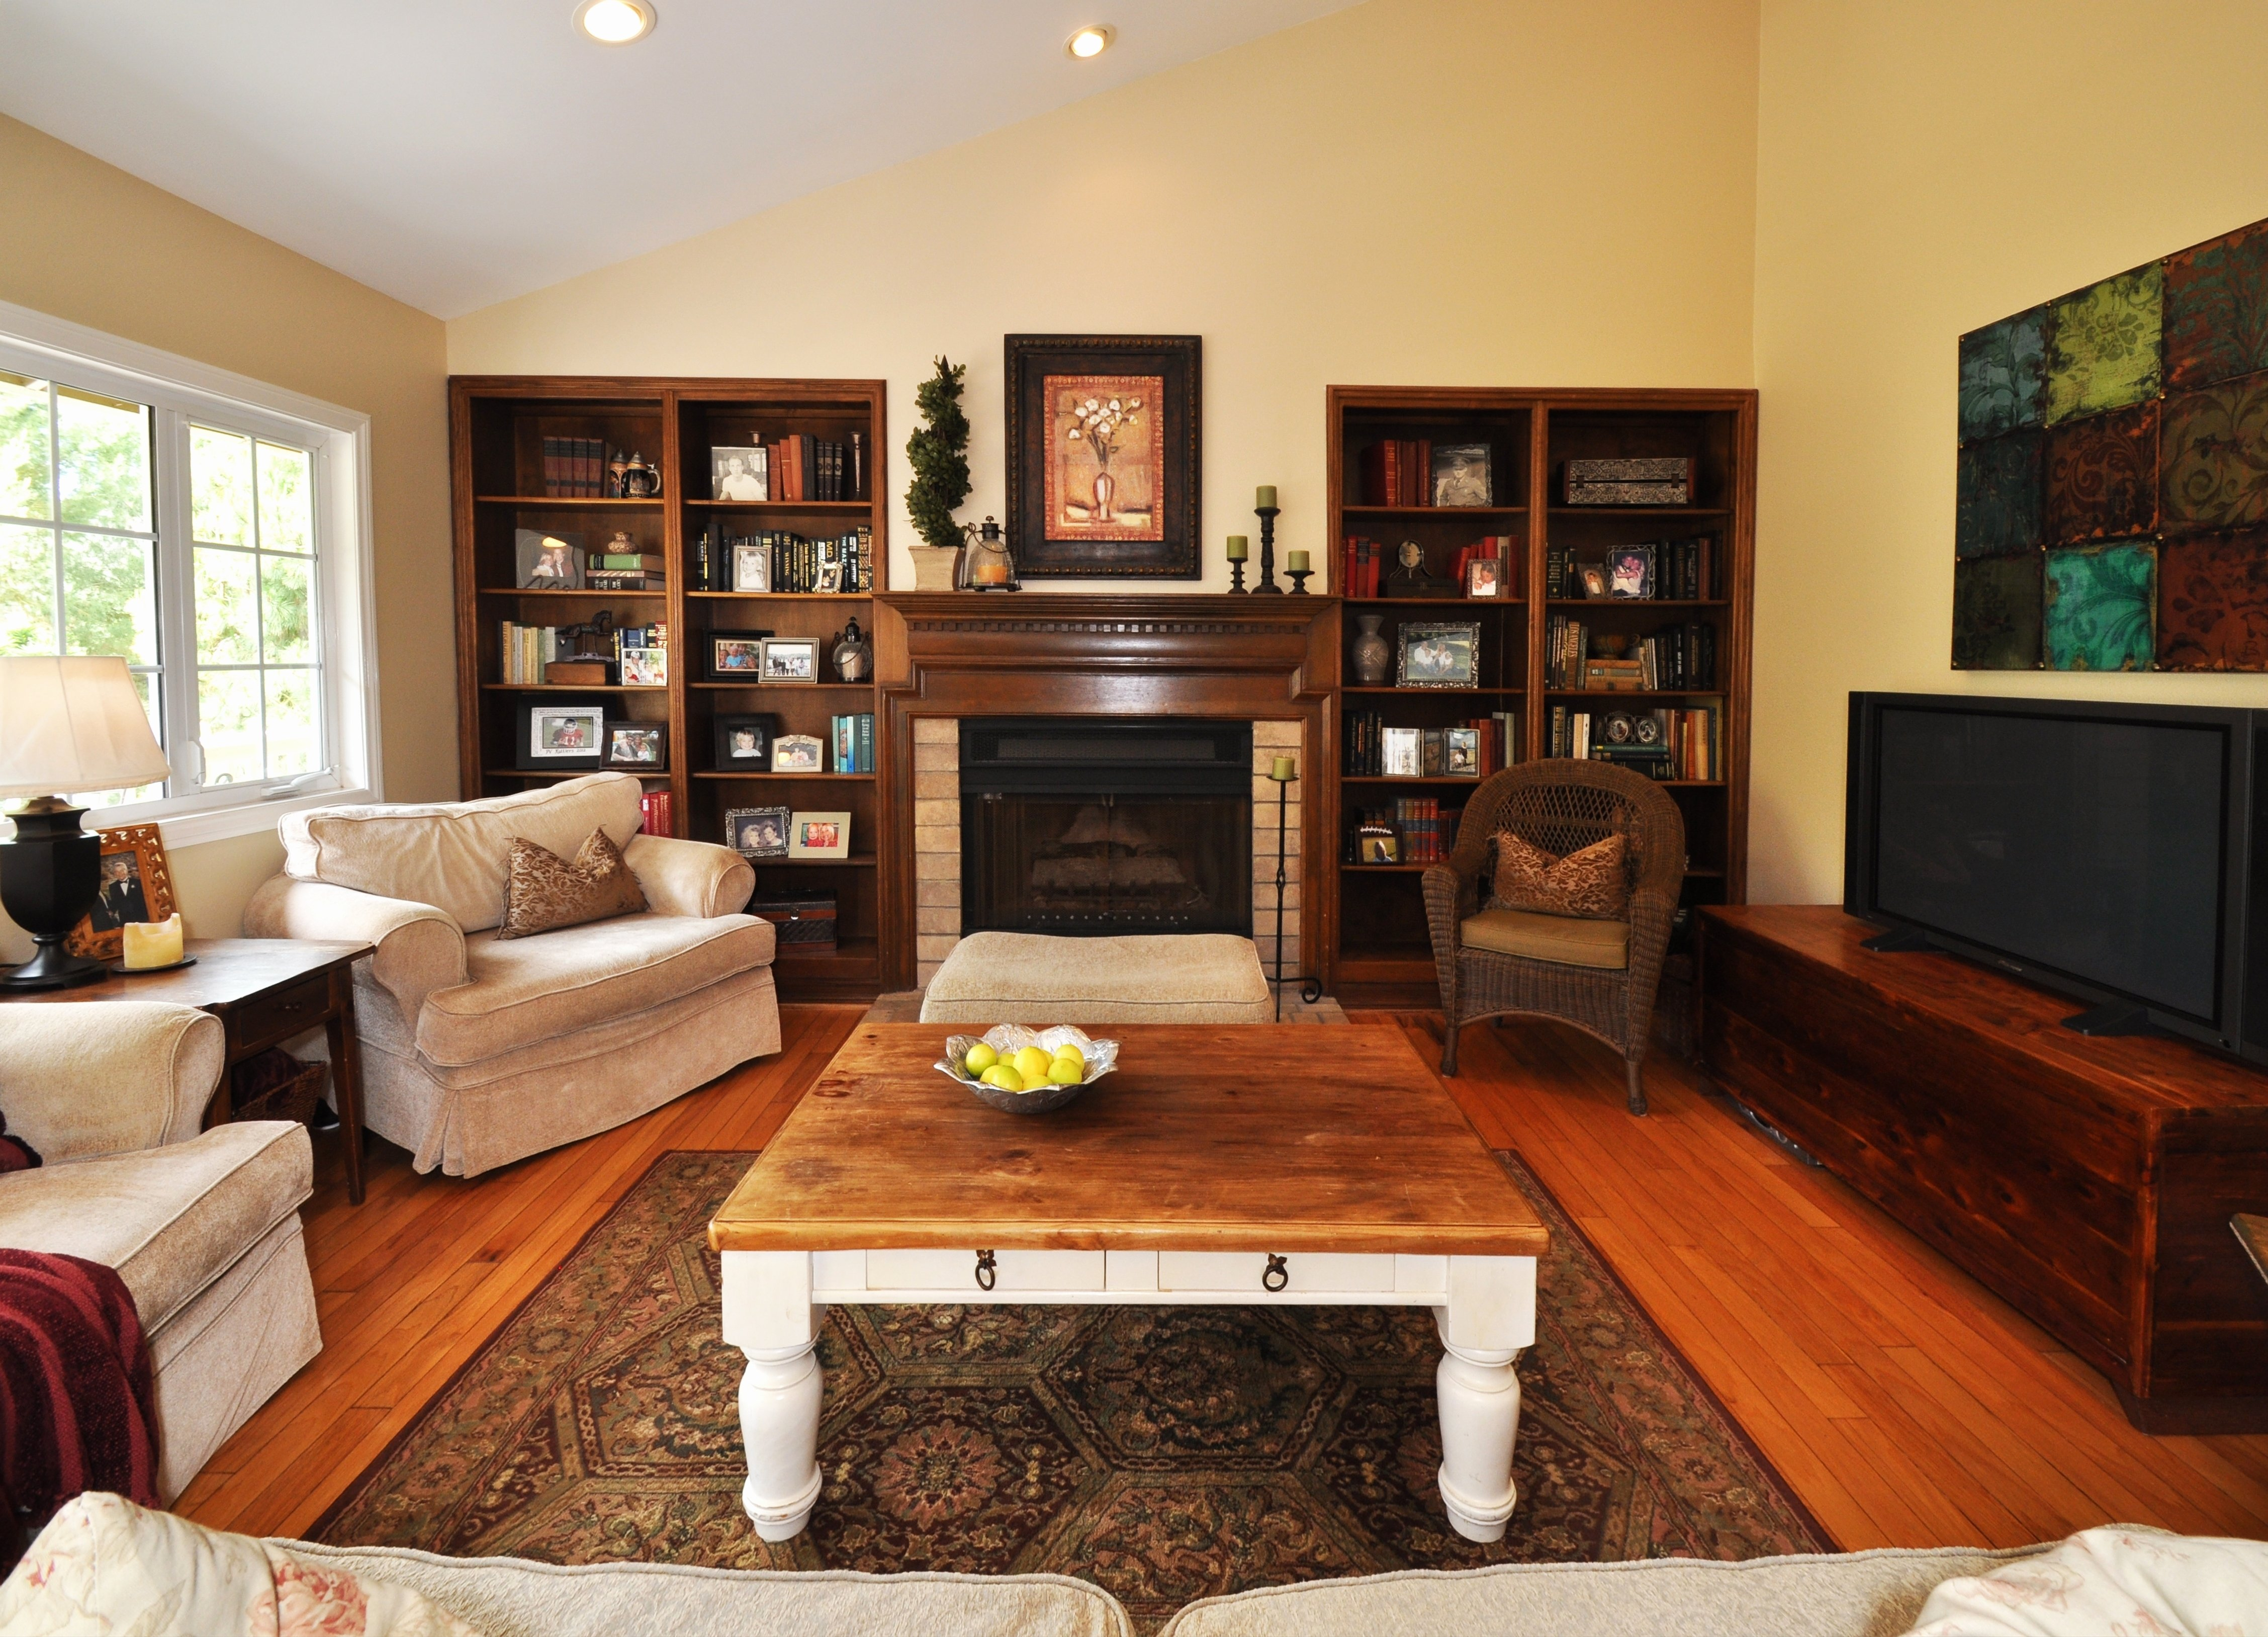 10 Unique Living Room With Fireplace Decorating Ideas living room fireplace decorating ideas luxury living room with